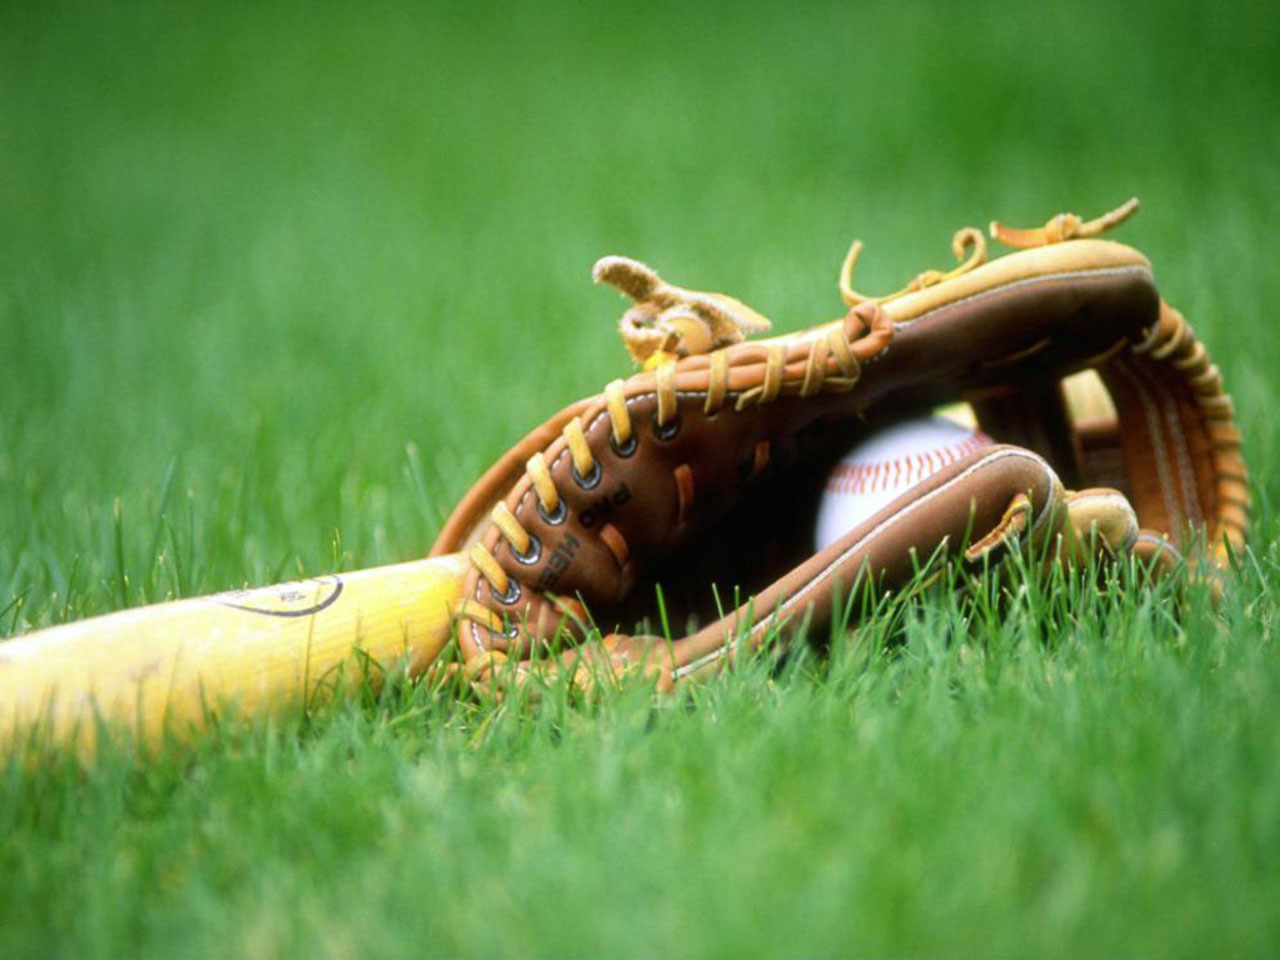 Softball Field Wallpaper Images Pictures   Becuo 1280x960